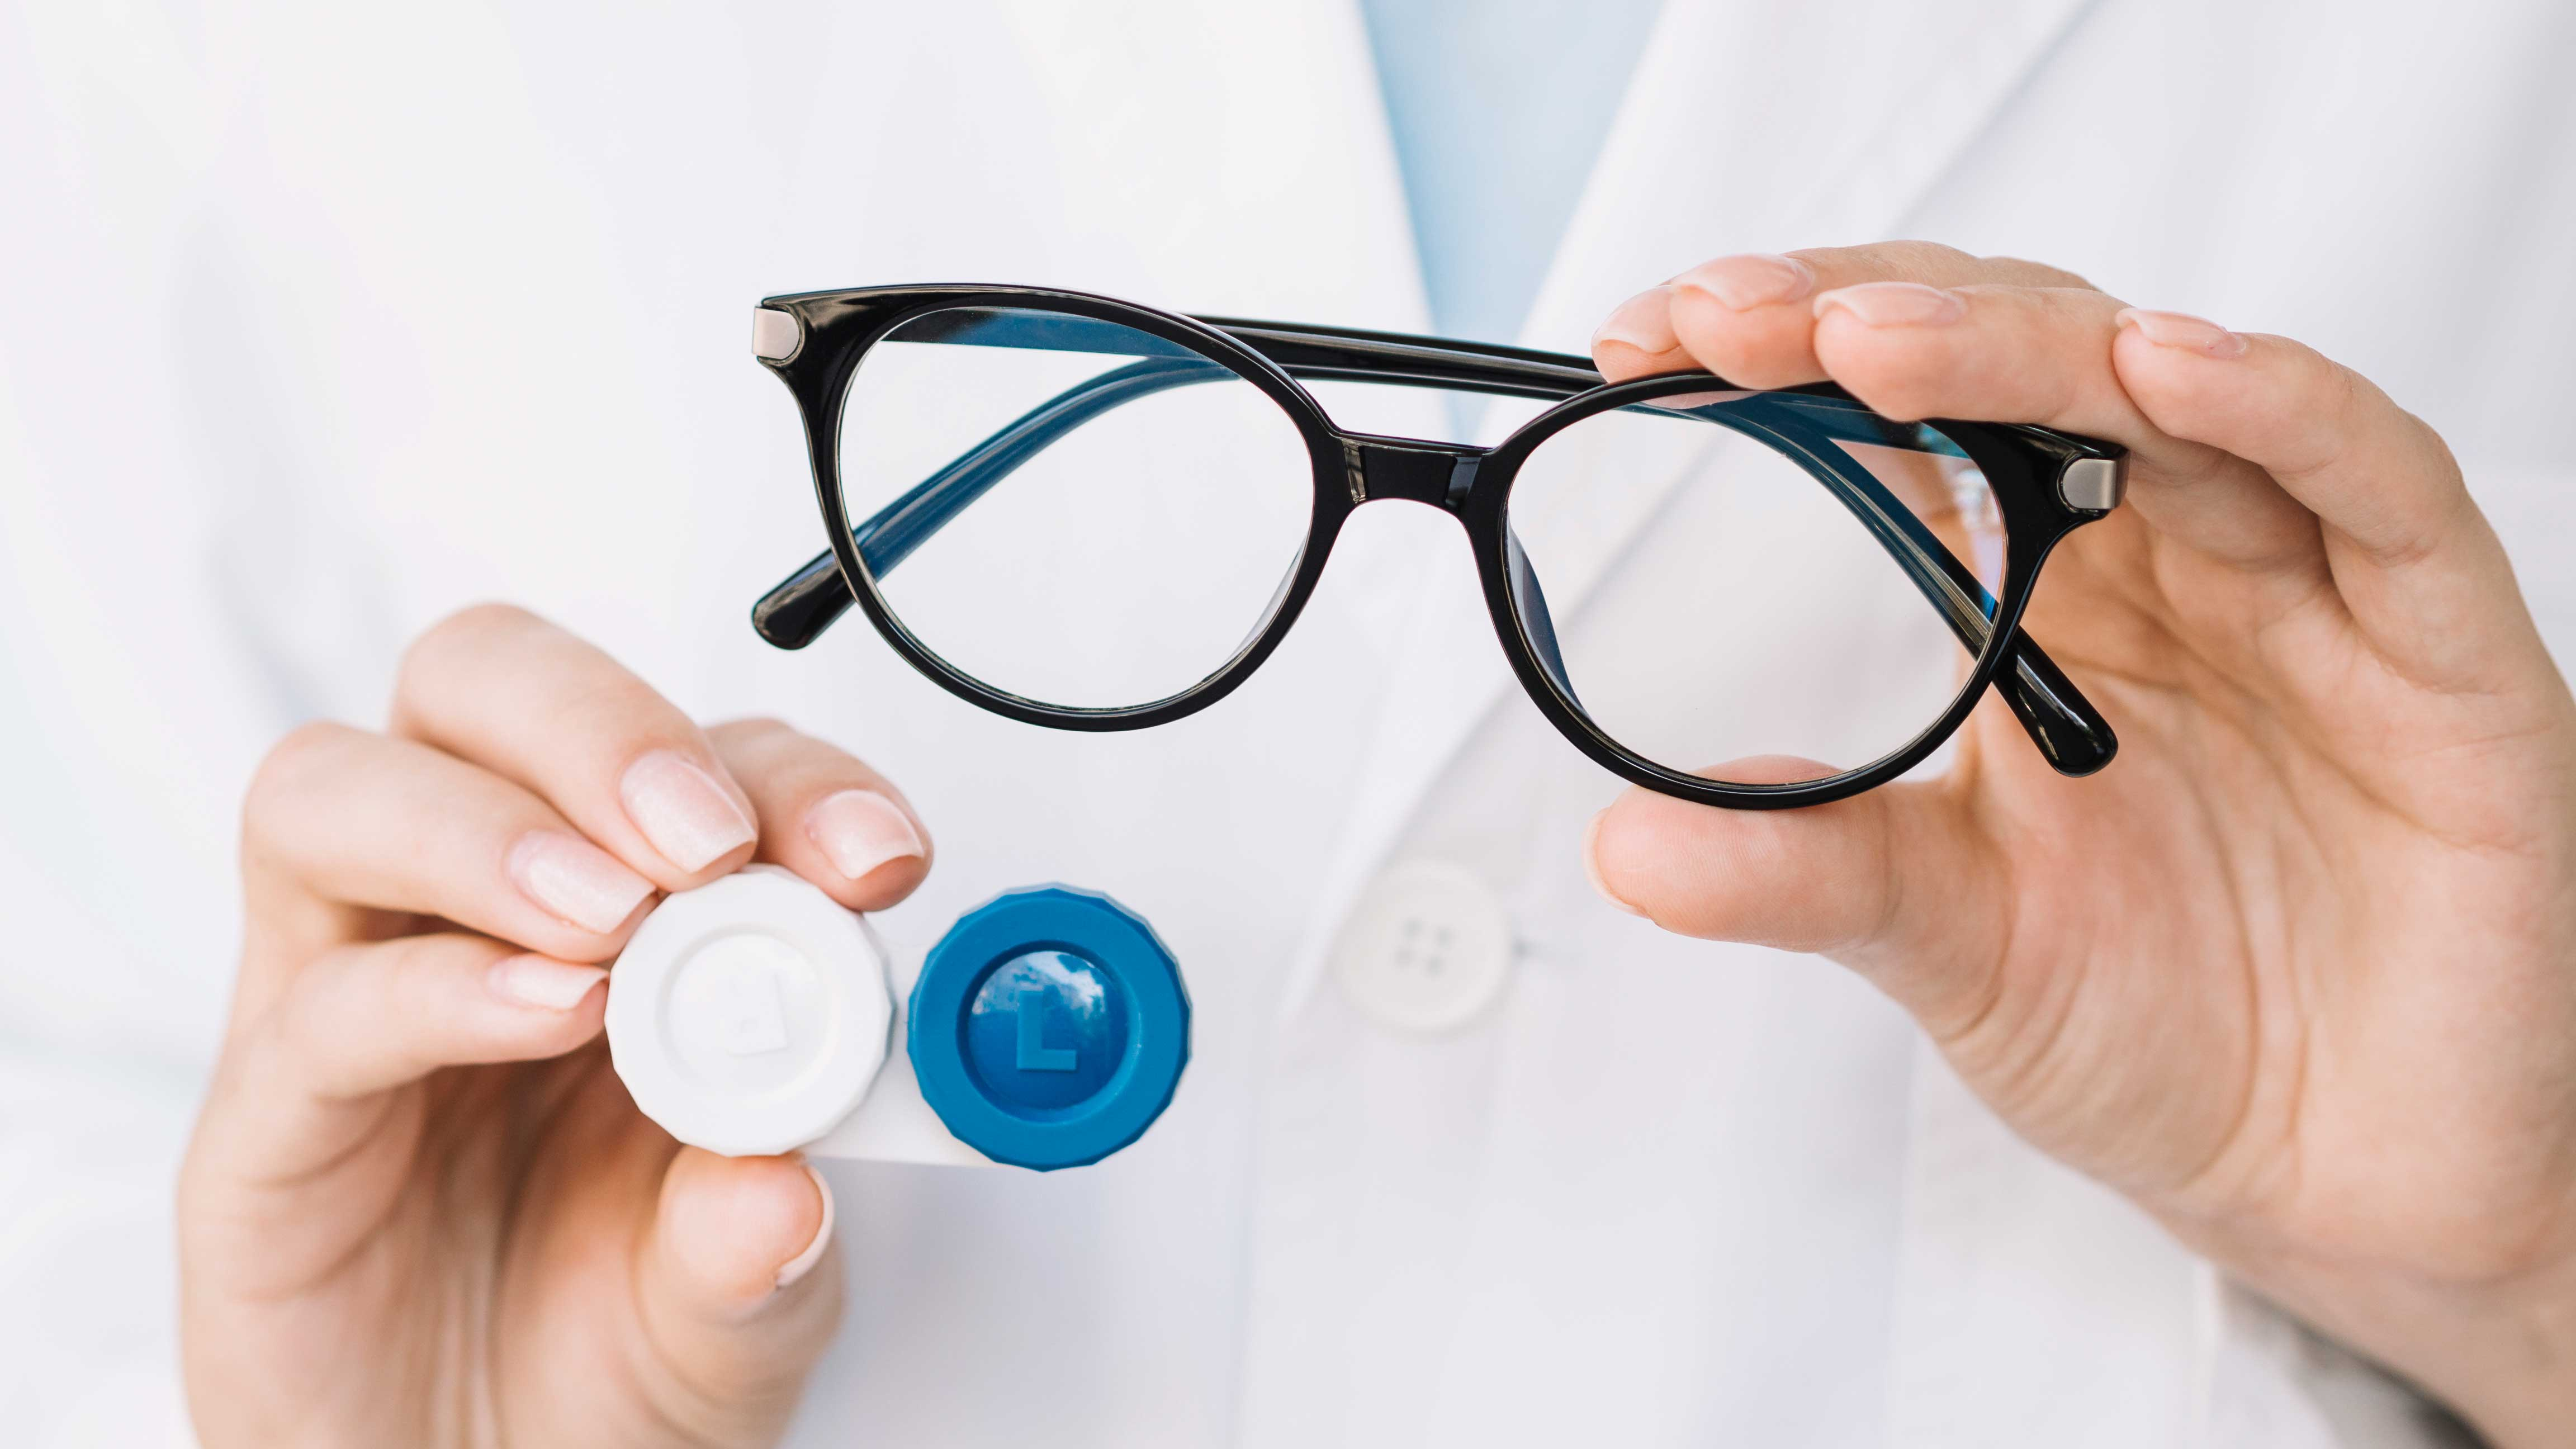 Switch From Contact Lenses To Glasses To Avoid COVID-19